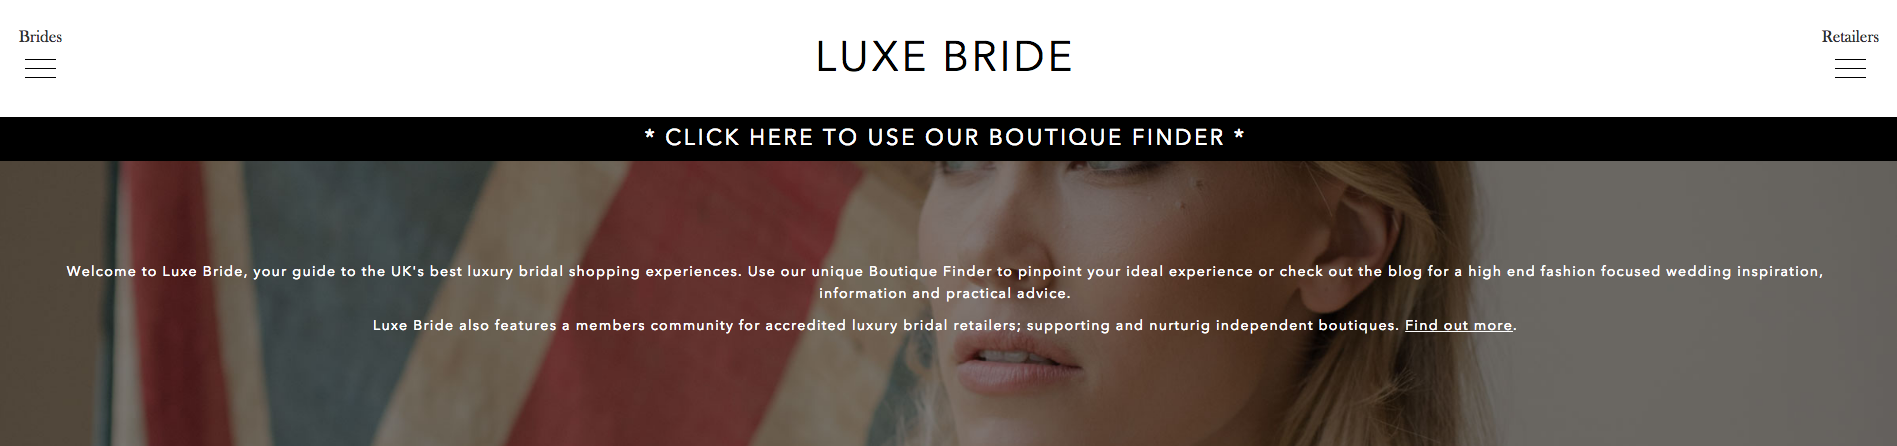 Luxe Bride Home Page